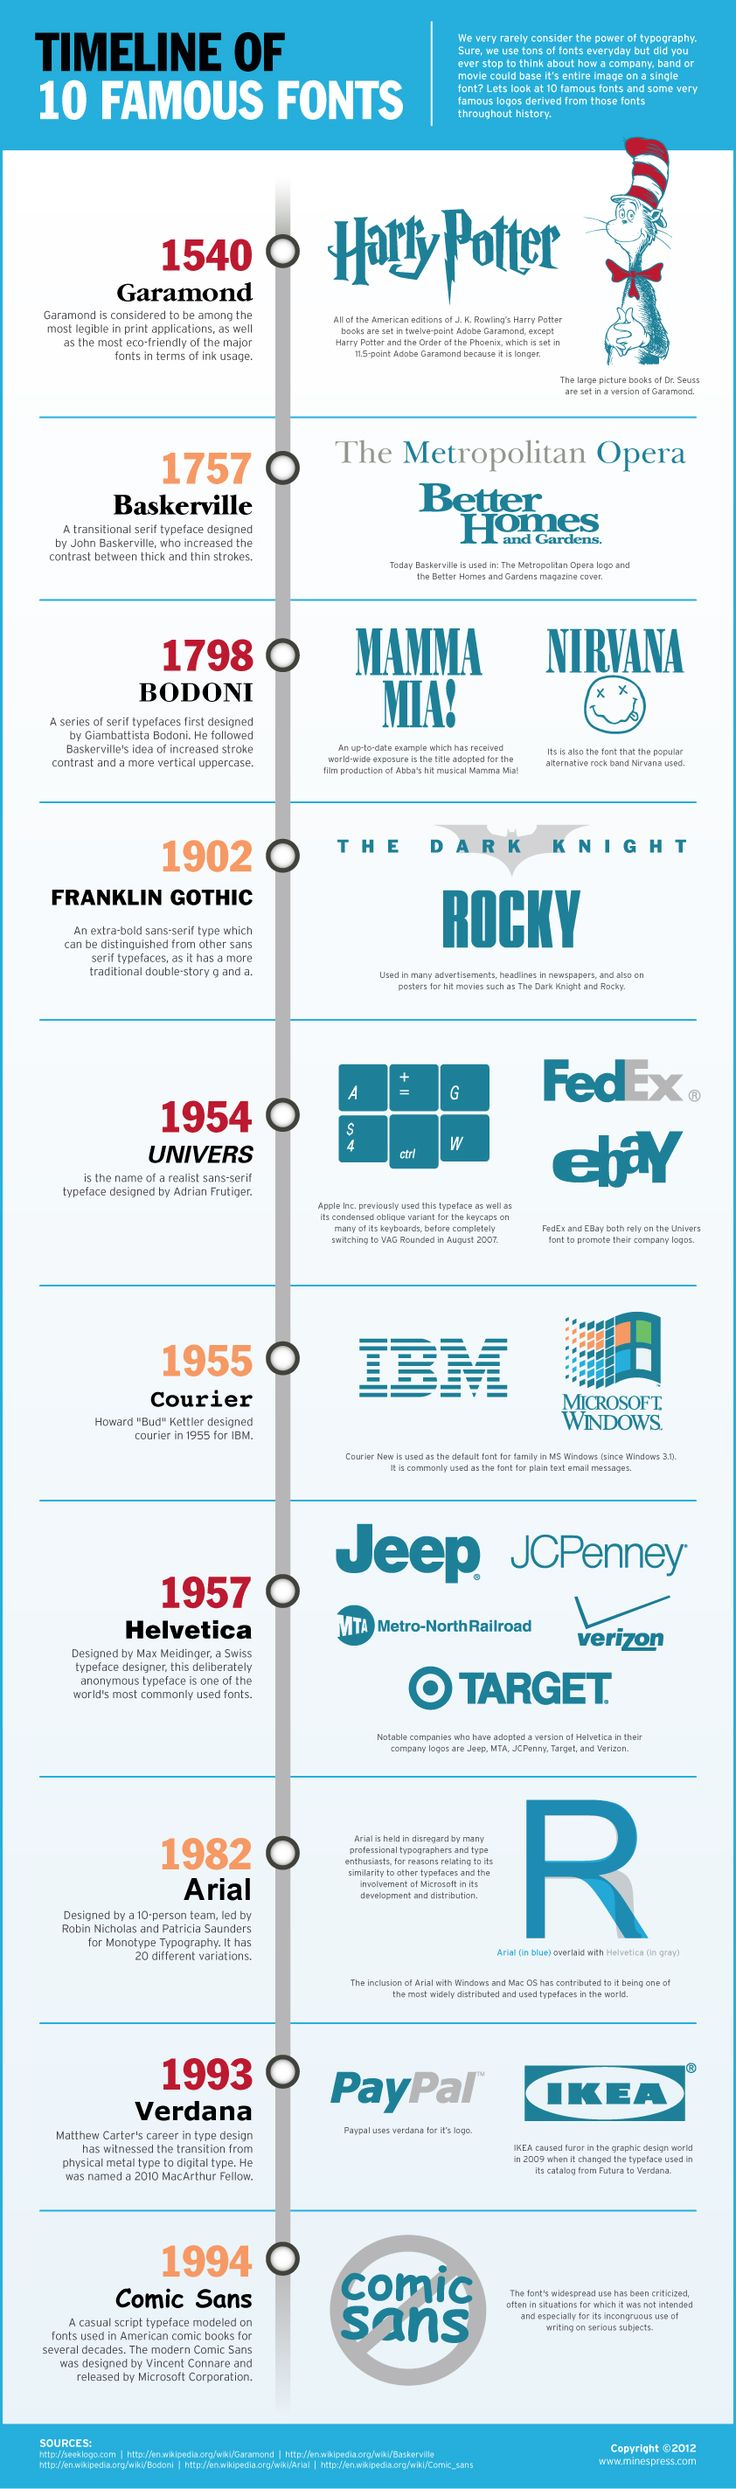 Timeline of 10 famous fonts #infographic